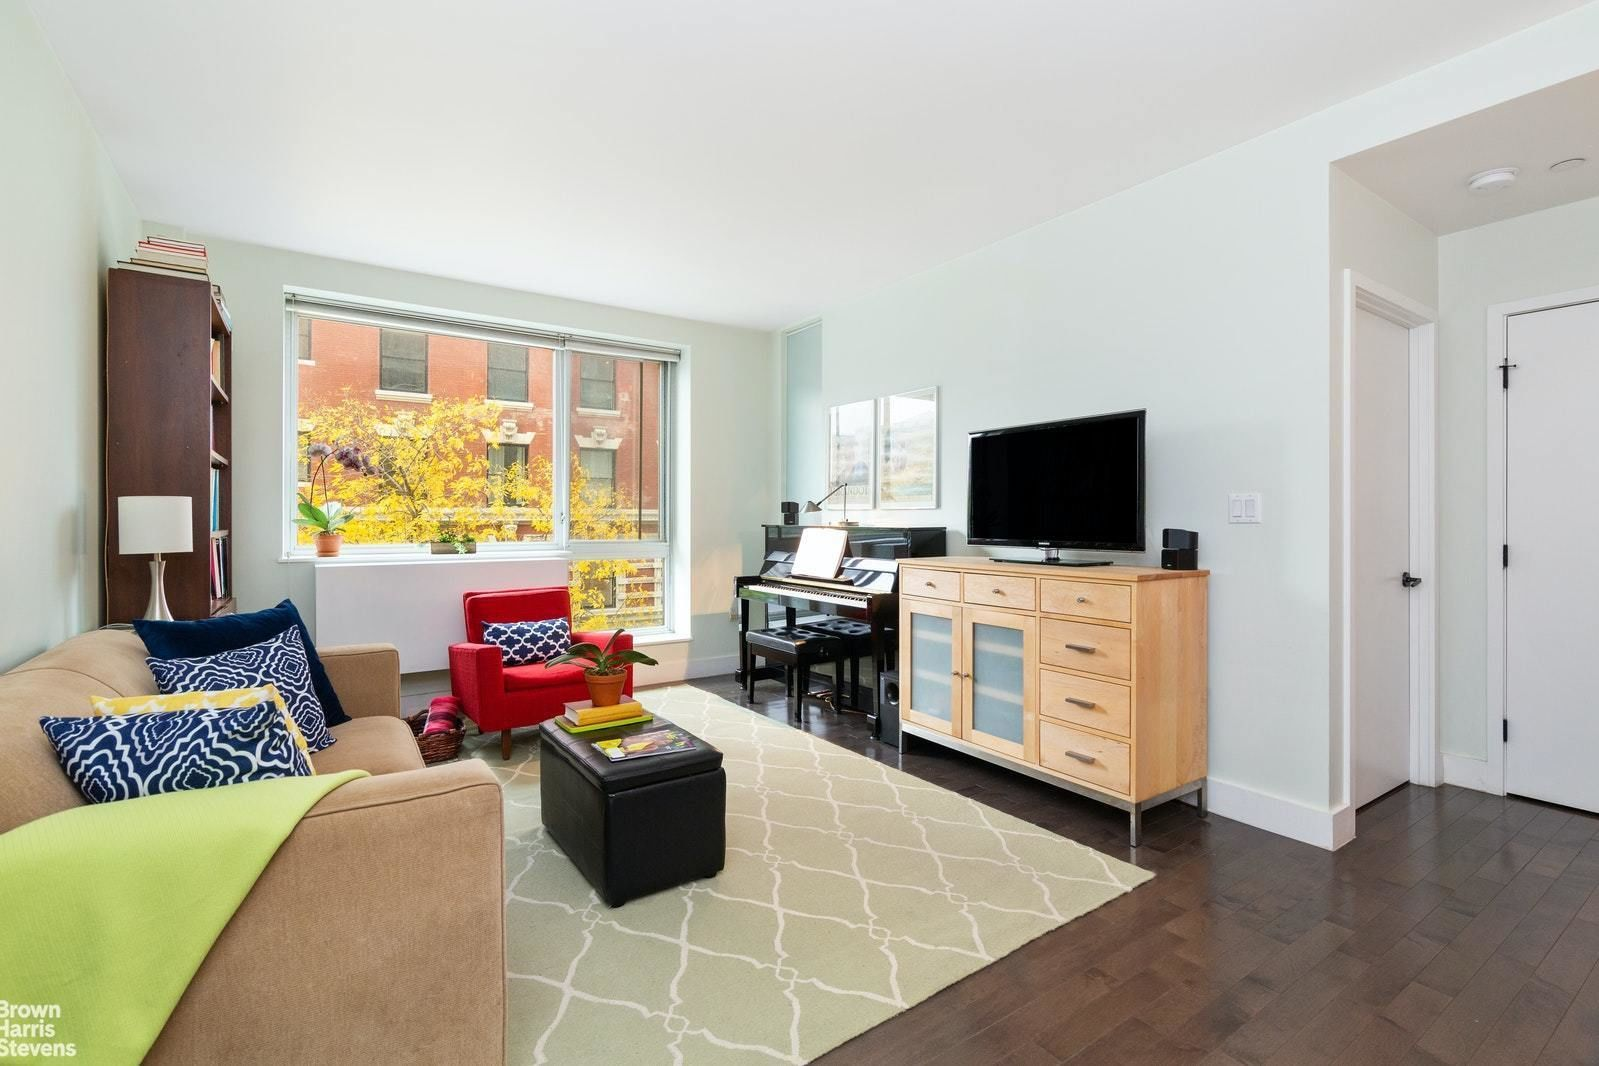 Apartment for sale at 88 Morningside Avenue, Apt 3D